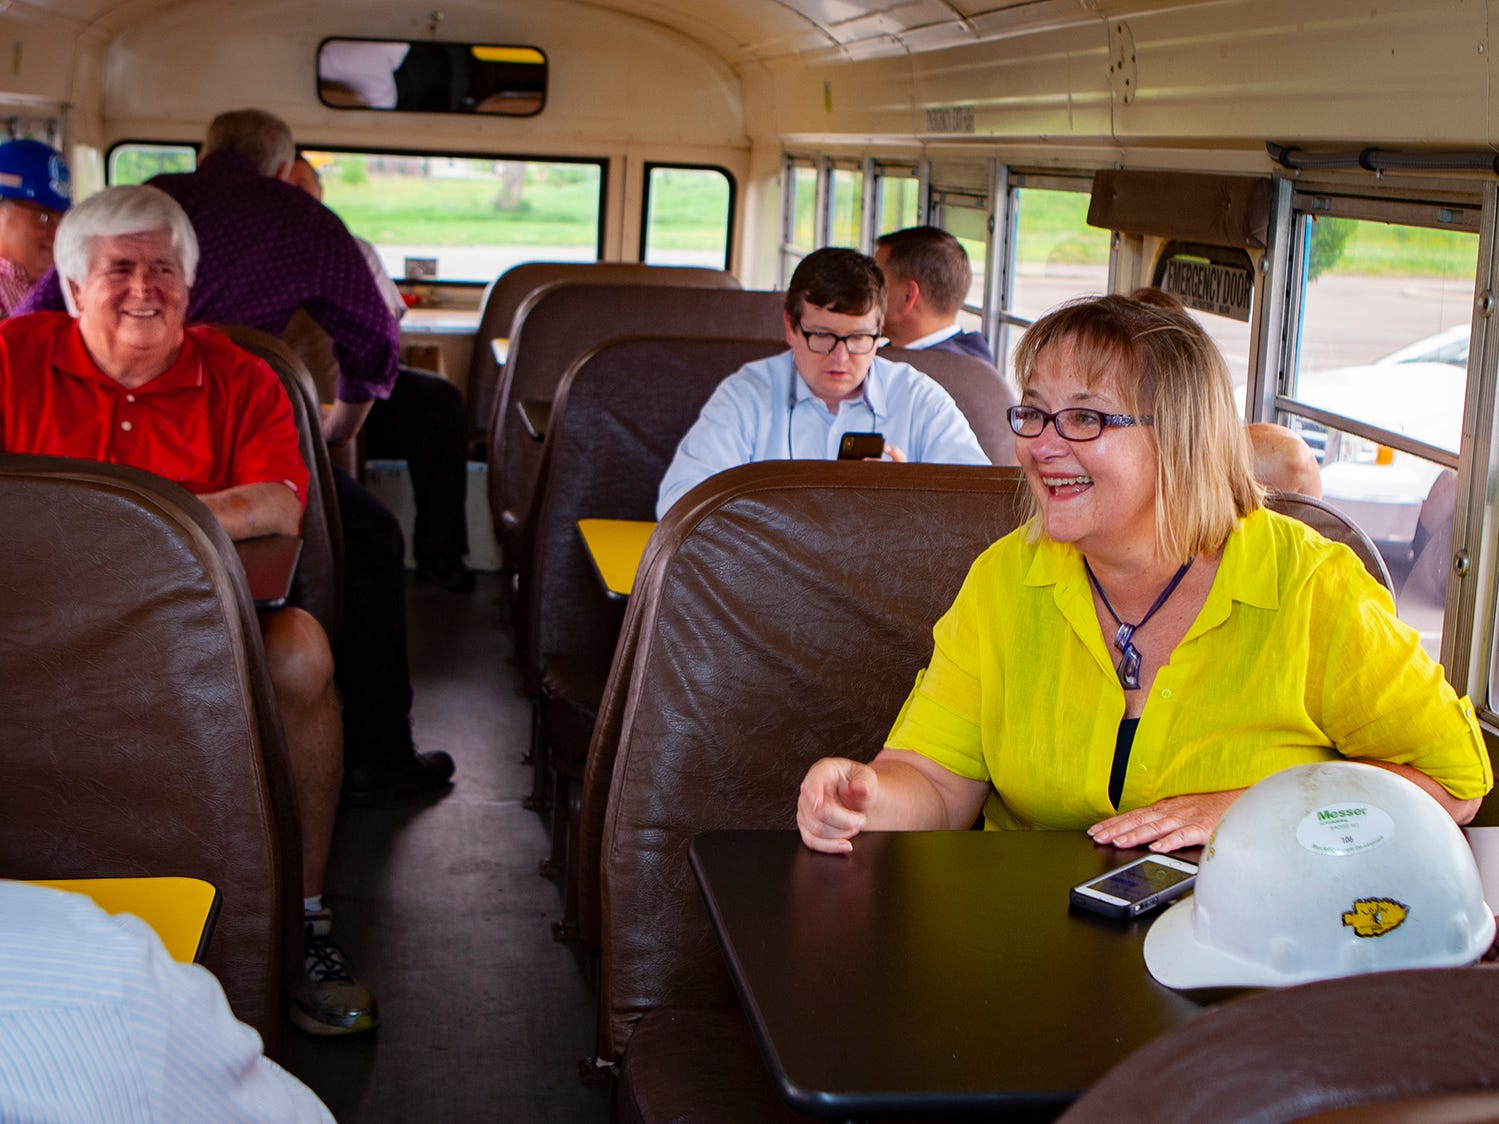 Murfreesboro City Schools communications director Lisa Trail talks while on bus to tour Salem Elementary. Murfreesboro City Schools' 13th campus will open in July 2019.